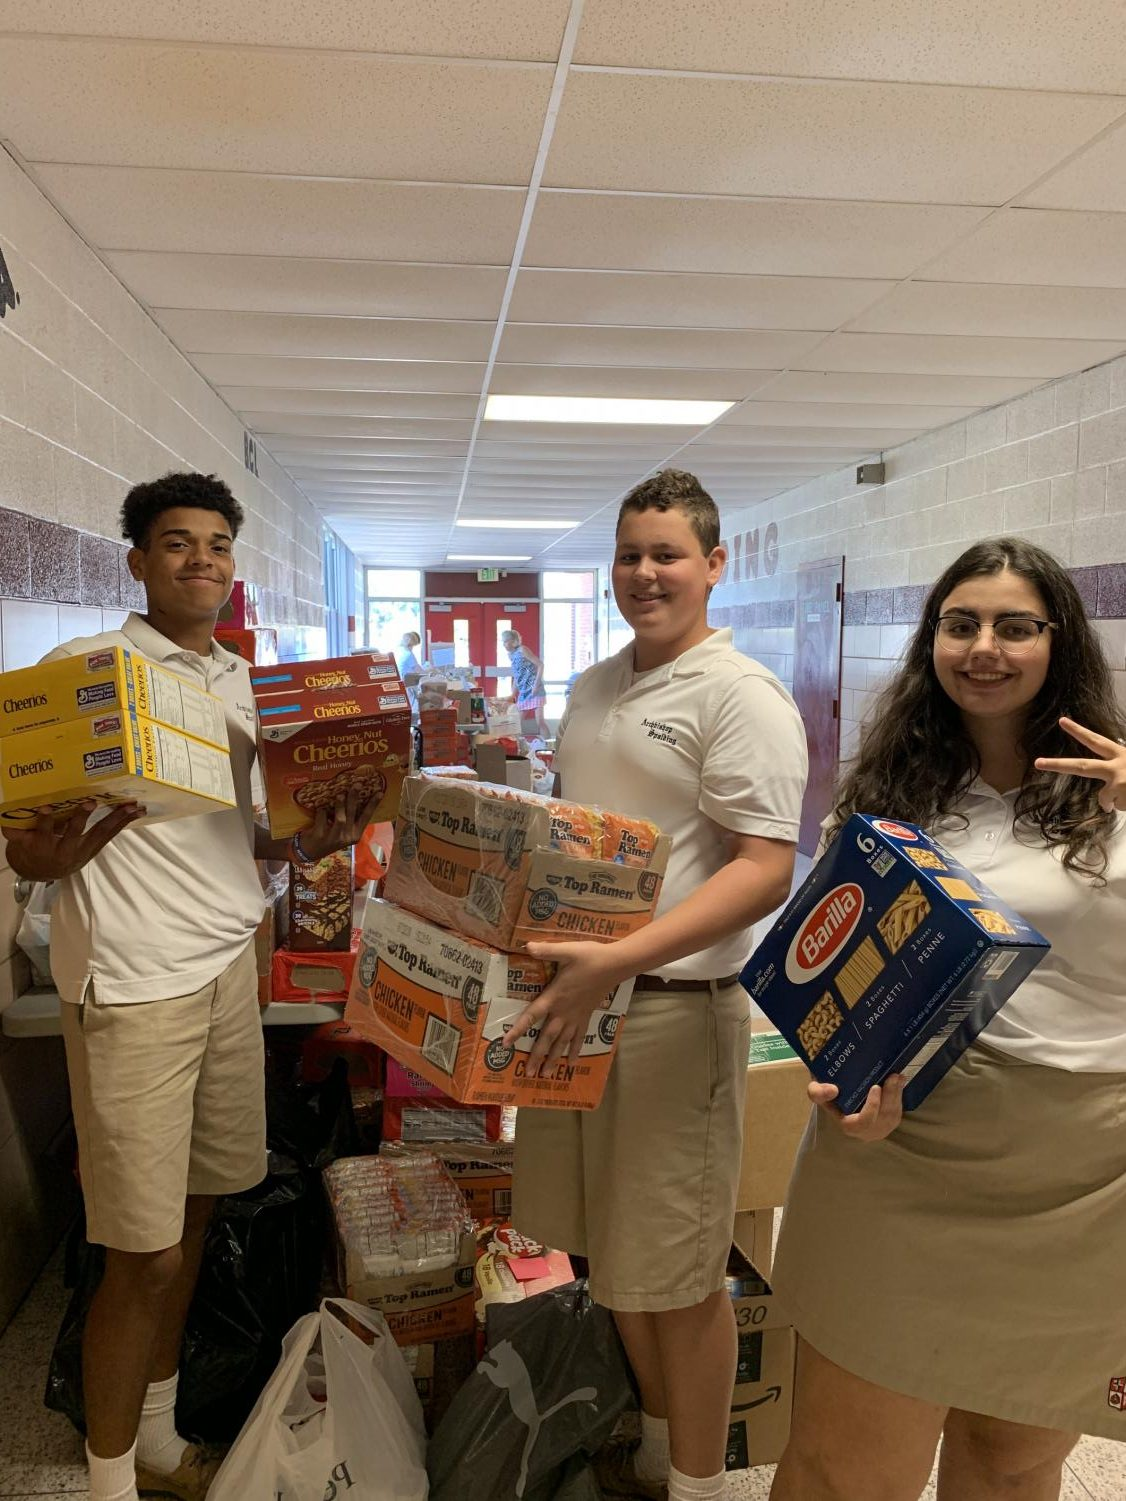 Spalding Students, Matthew Kostacopoulos '21, Nico Crofton '21 and Anna Karageorgi '21 sorting the canned goods.